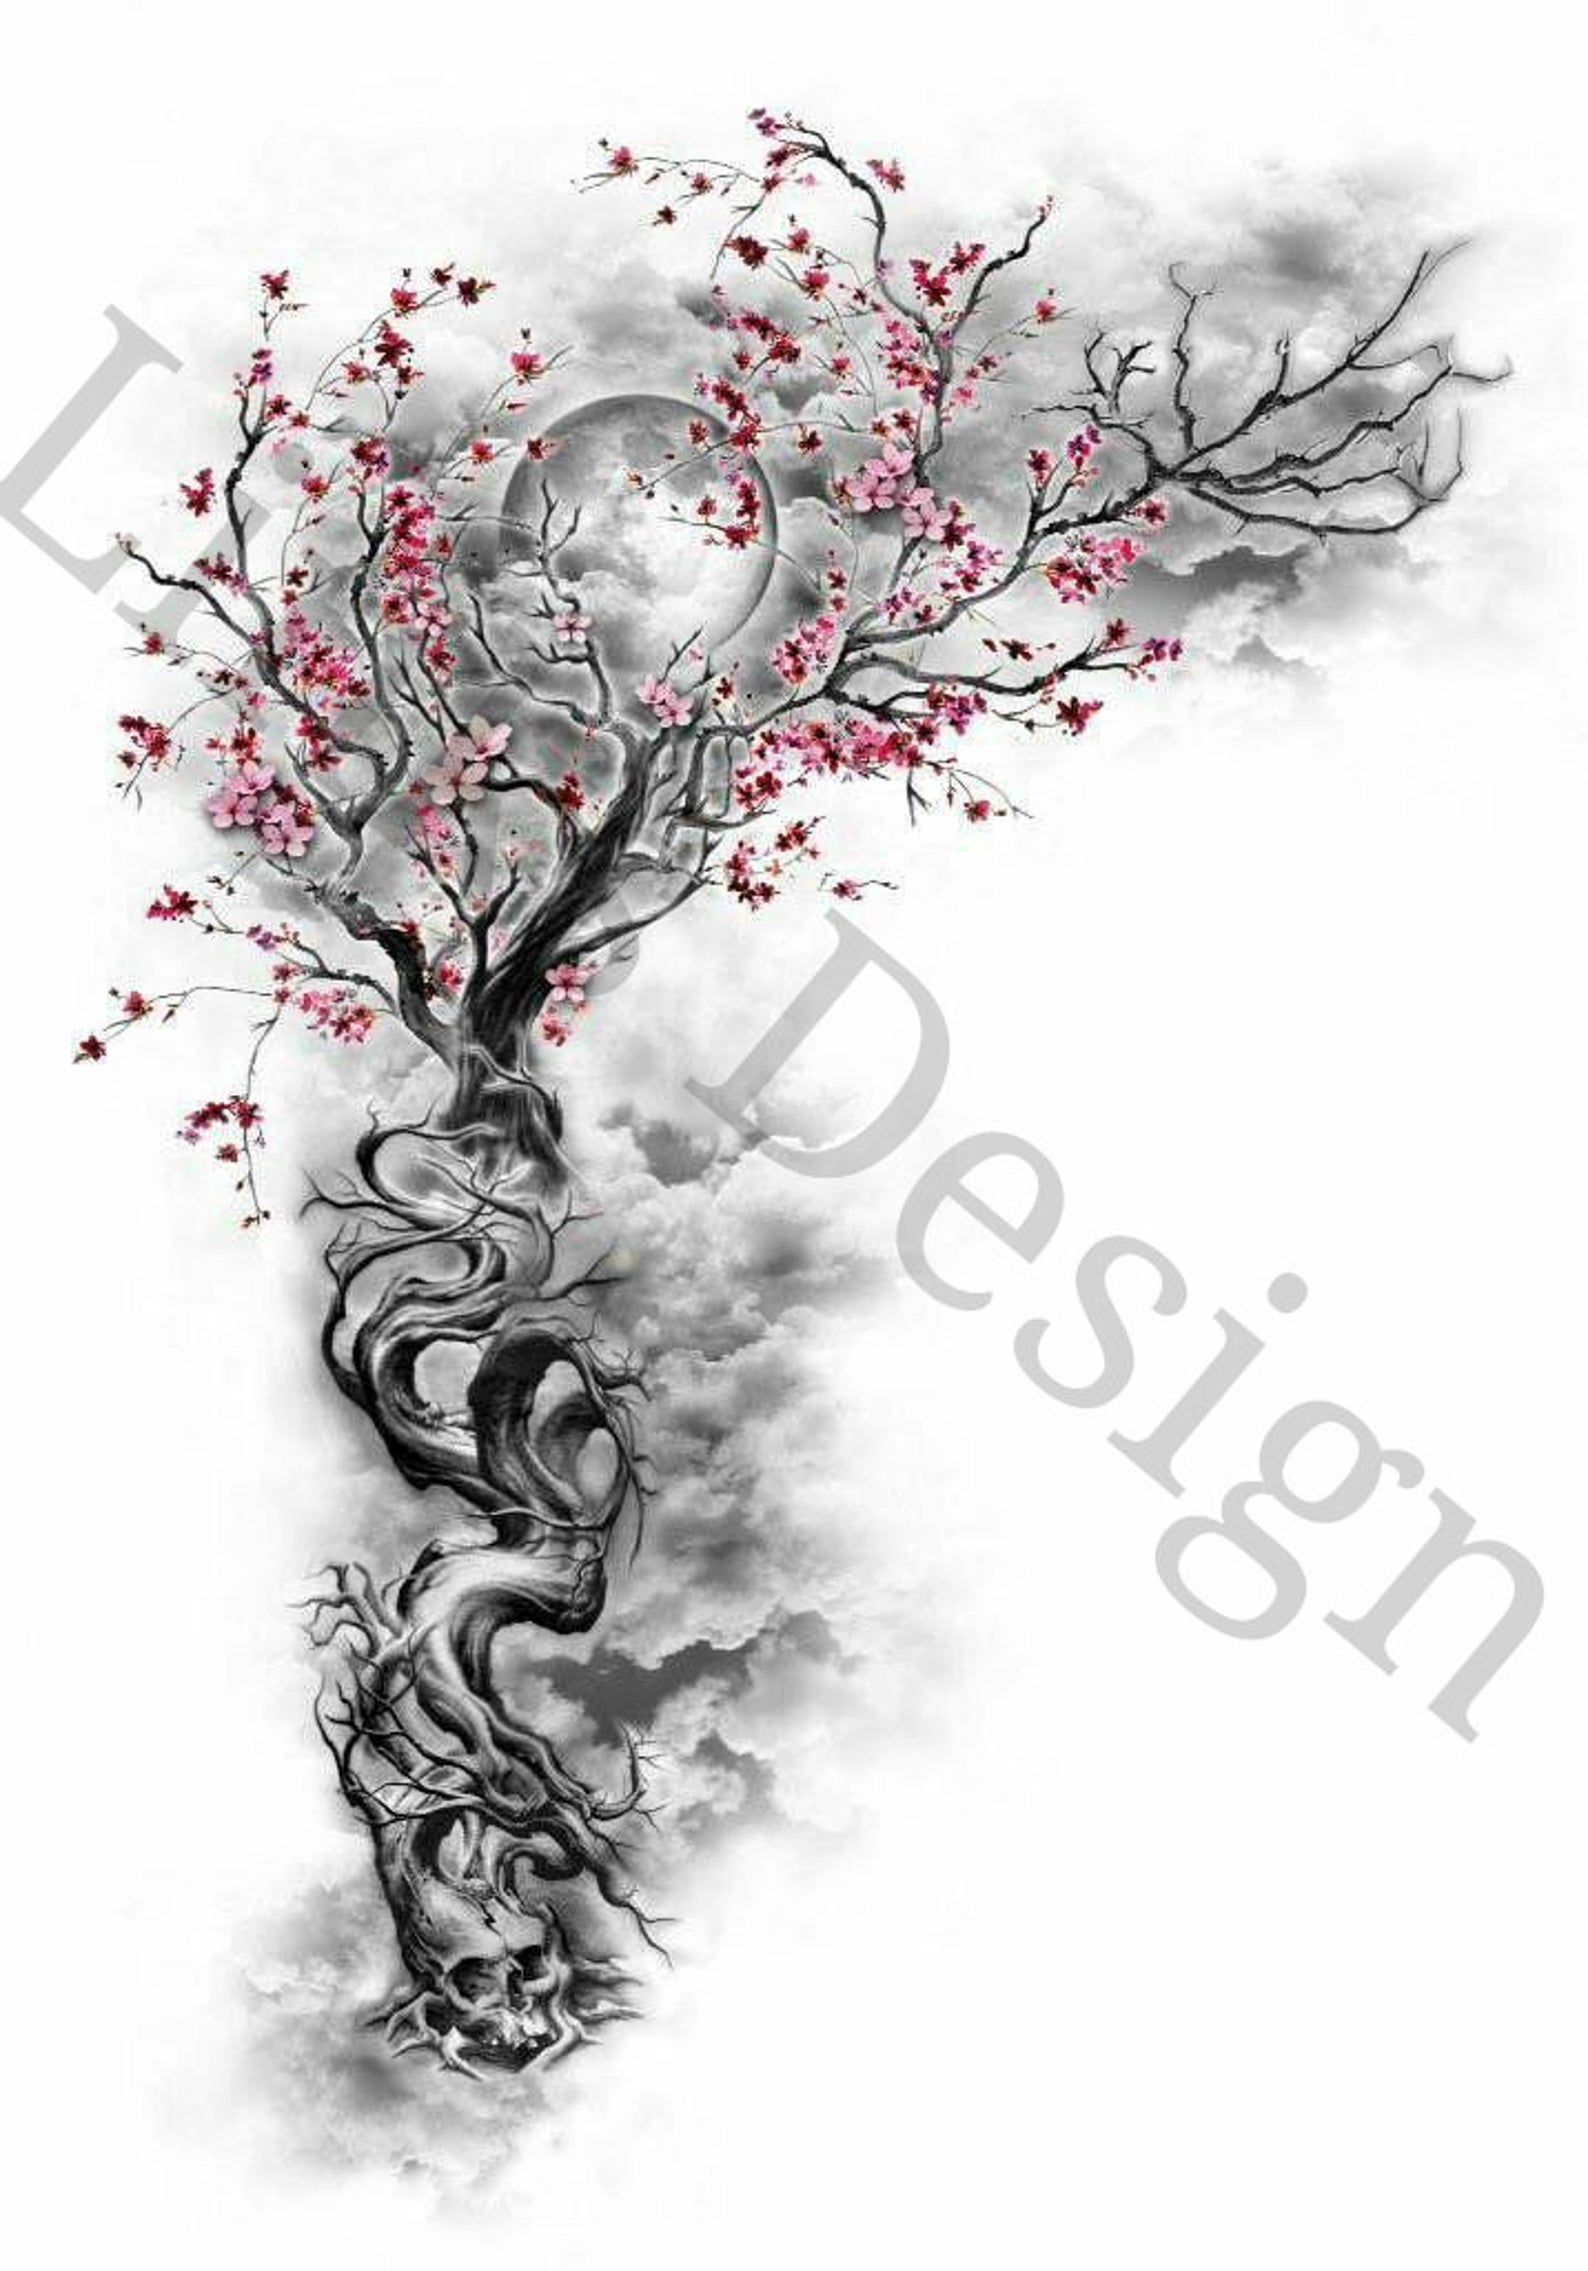 Rose Cherry Blossom Tree And Skull Waterslide Decal For Tumblers In 2021 Tattoos Tattoo Designs Sleeve Tattoos